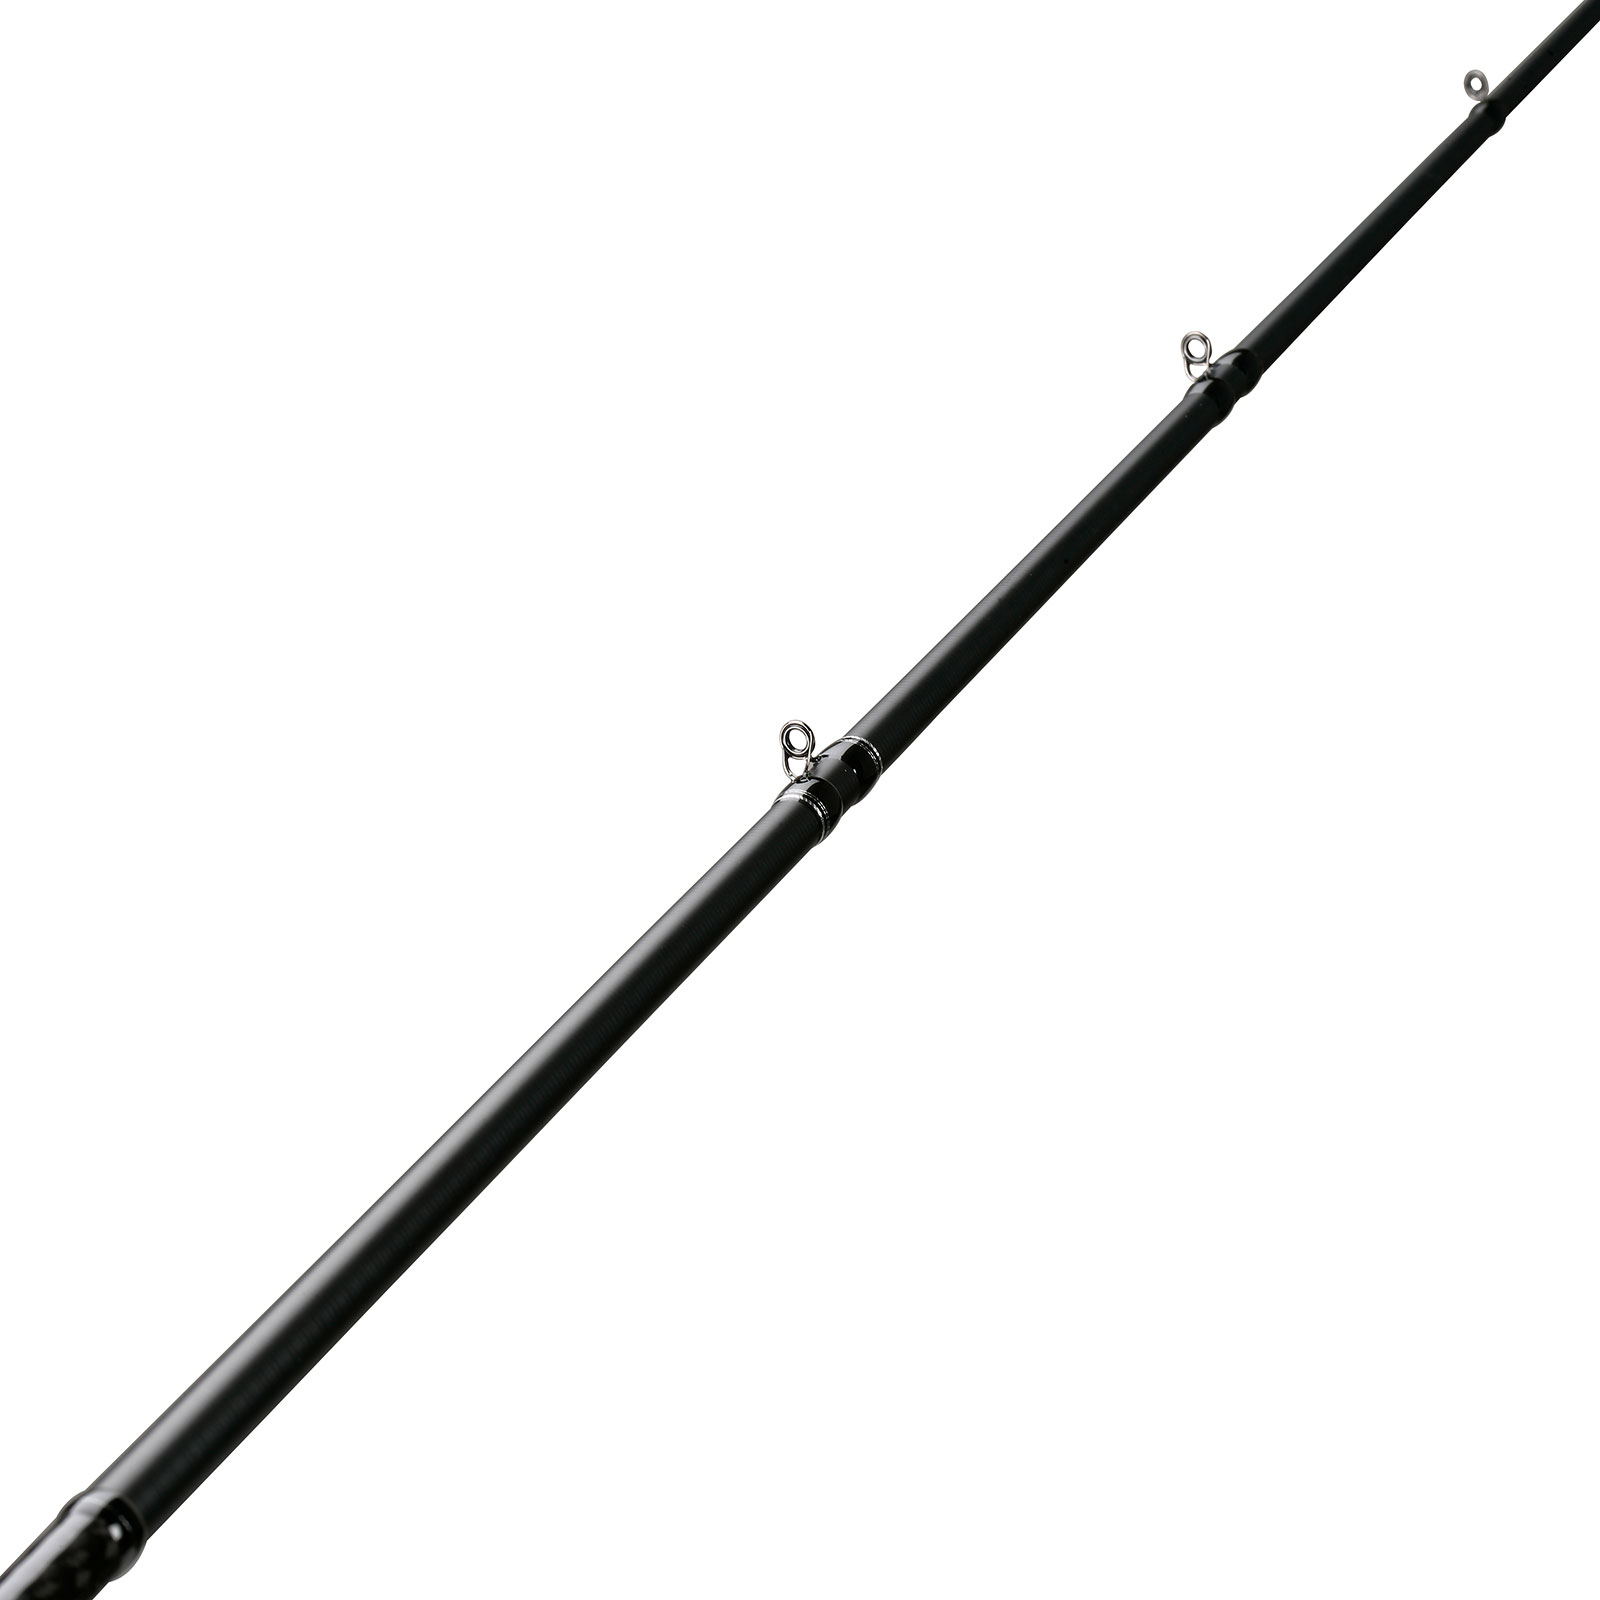 13 Fishing Fate Black 3 Crankbait Casting Rod FTB3C7C thumbnail